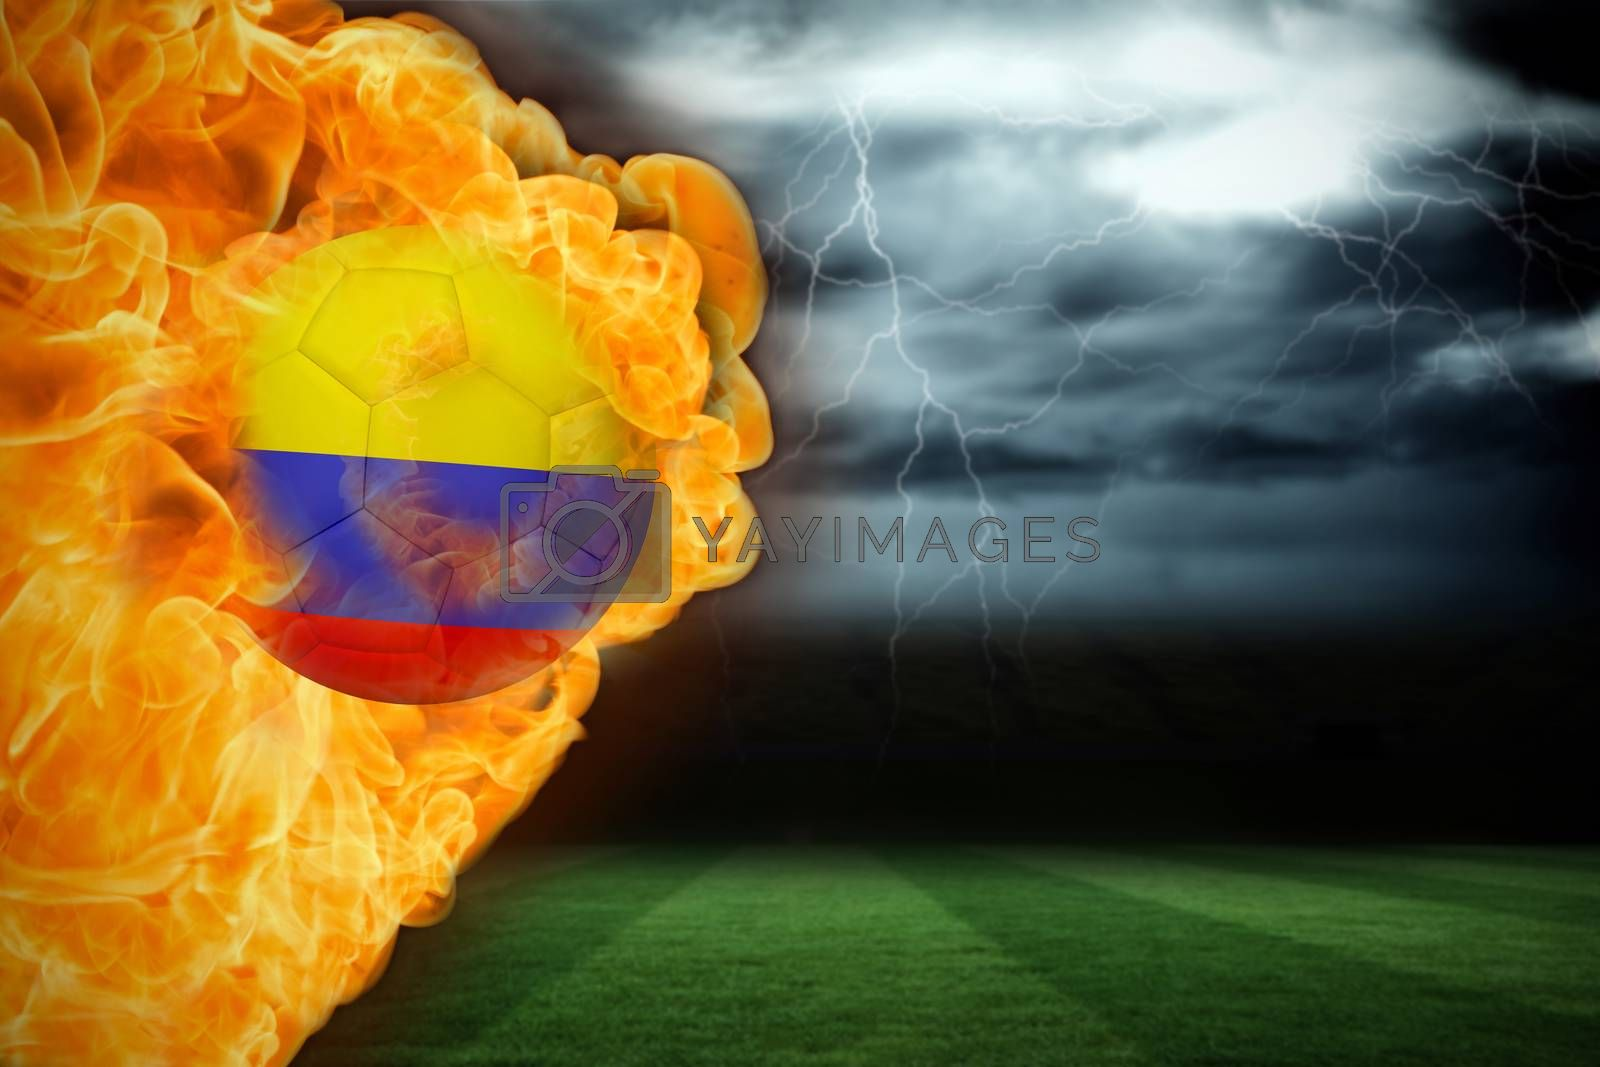 Fire surrounding colombia flag football by Wavebreakmedia